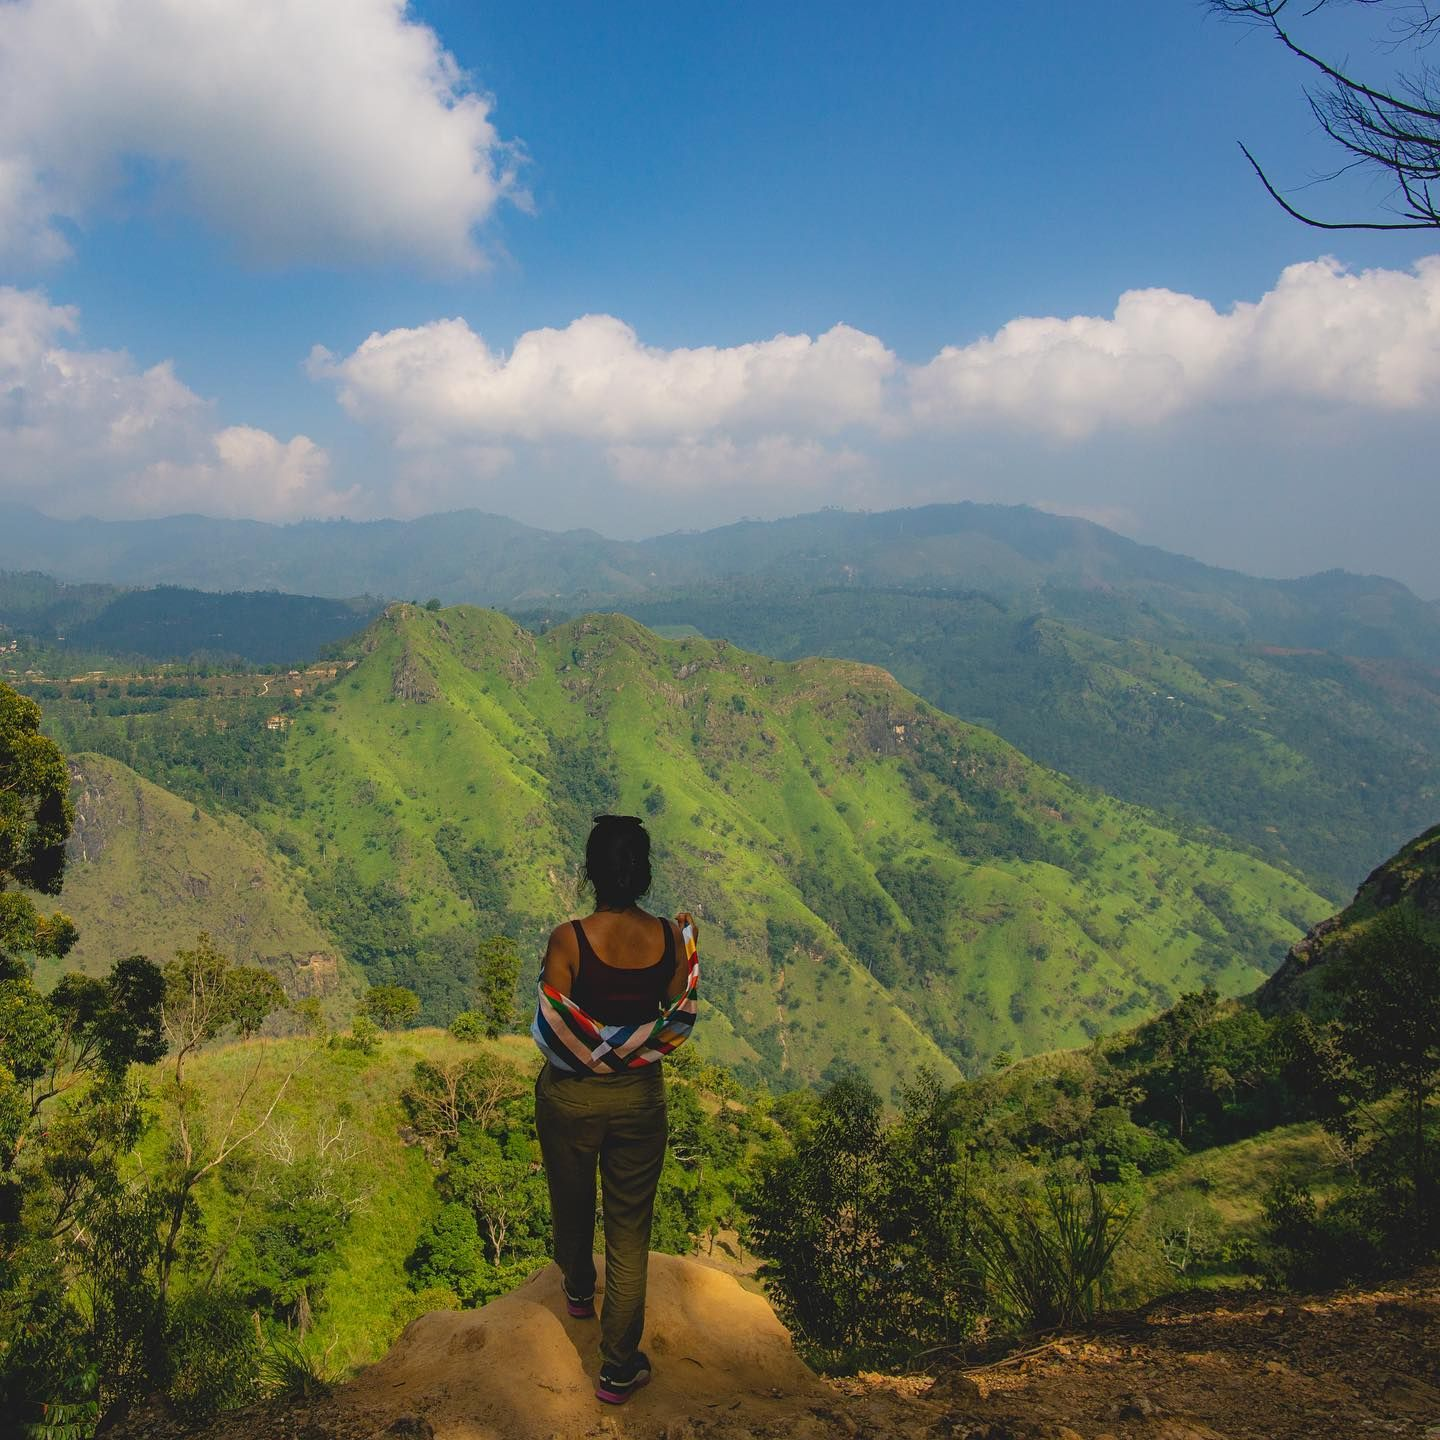 The Reason Why We Chose Ella Was To Explore The Mountain Side Of The Island Country Sri Lanka Ella Rock Was One Of The Pla In 2020 Travel Pose Travel Travel Instagram